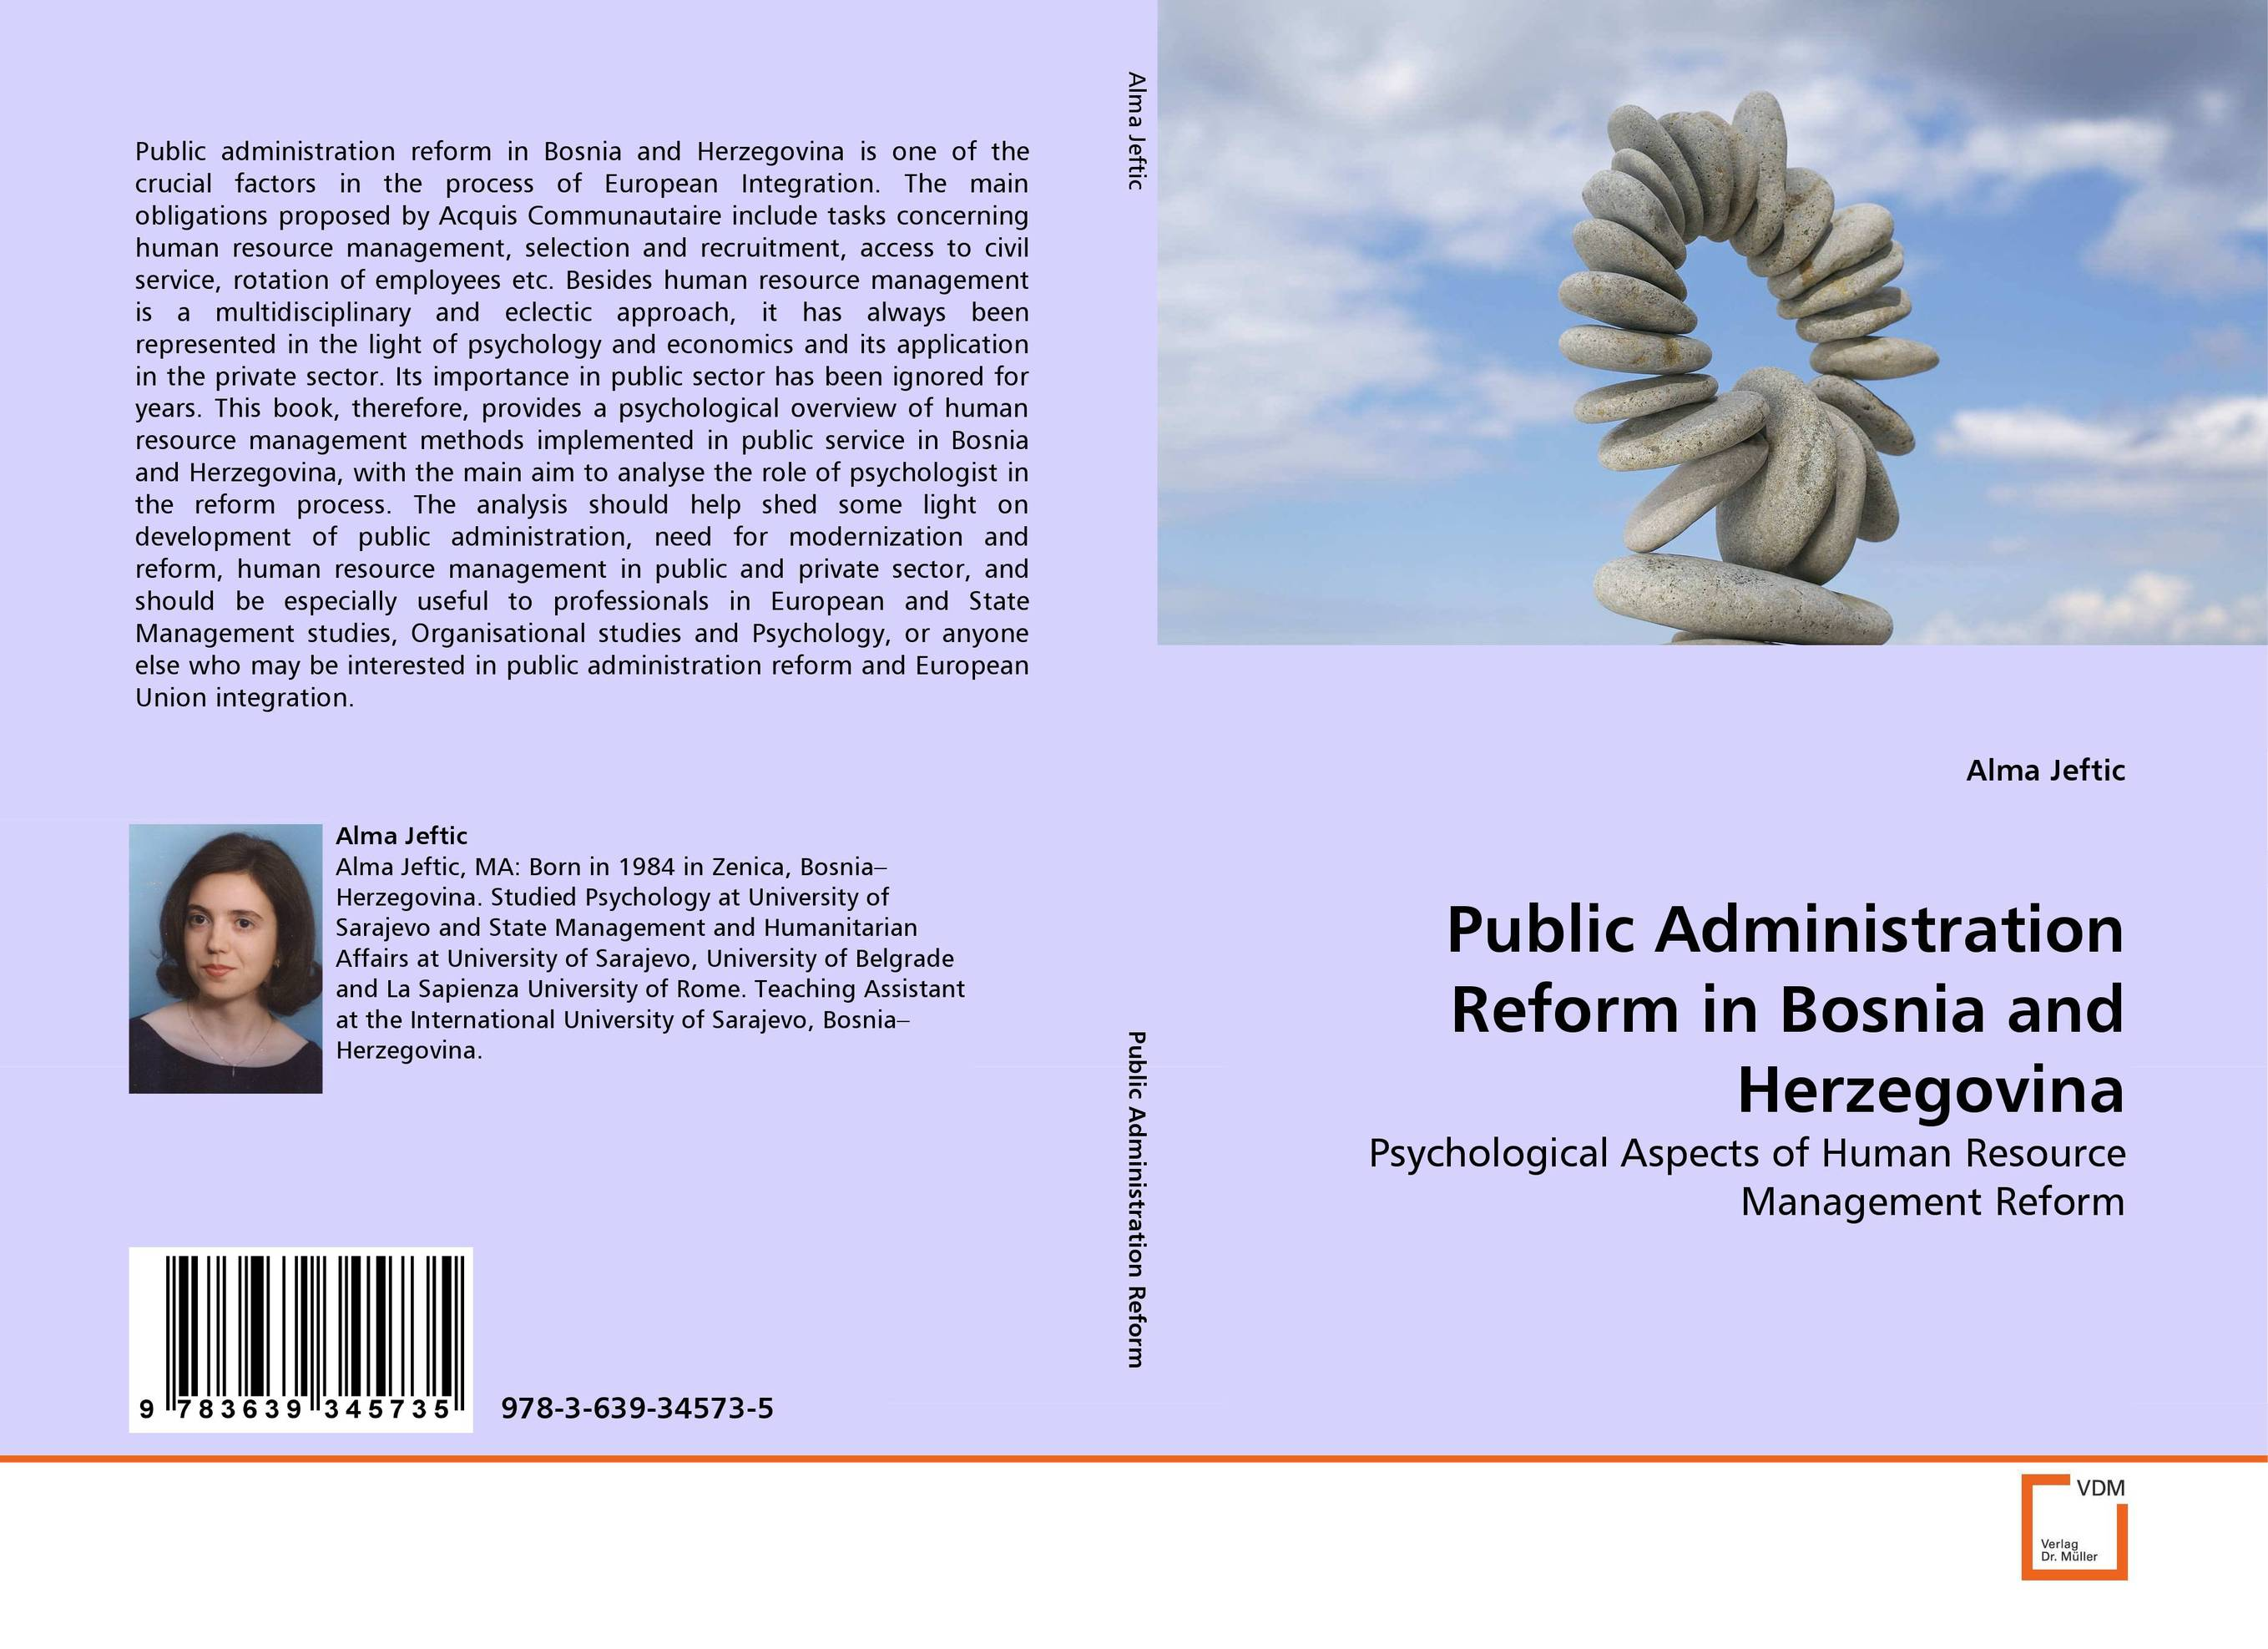 Public Administration Reform in Bosnia and Herzegovina public sector management techniques